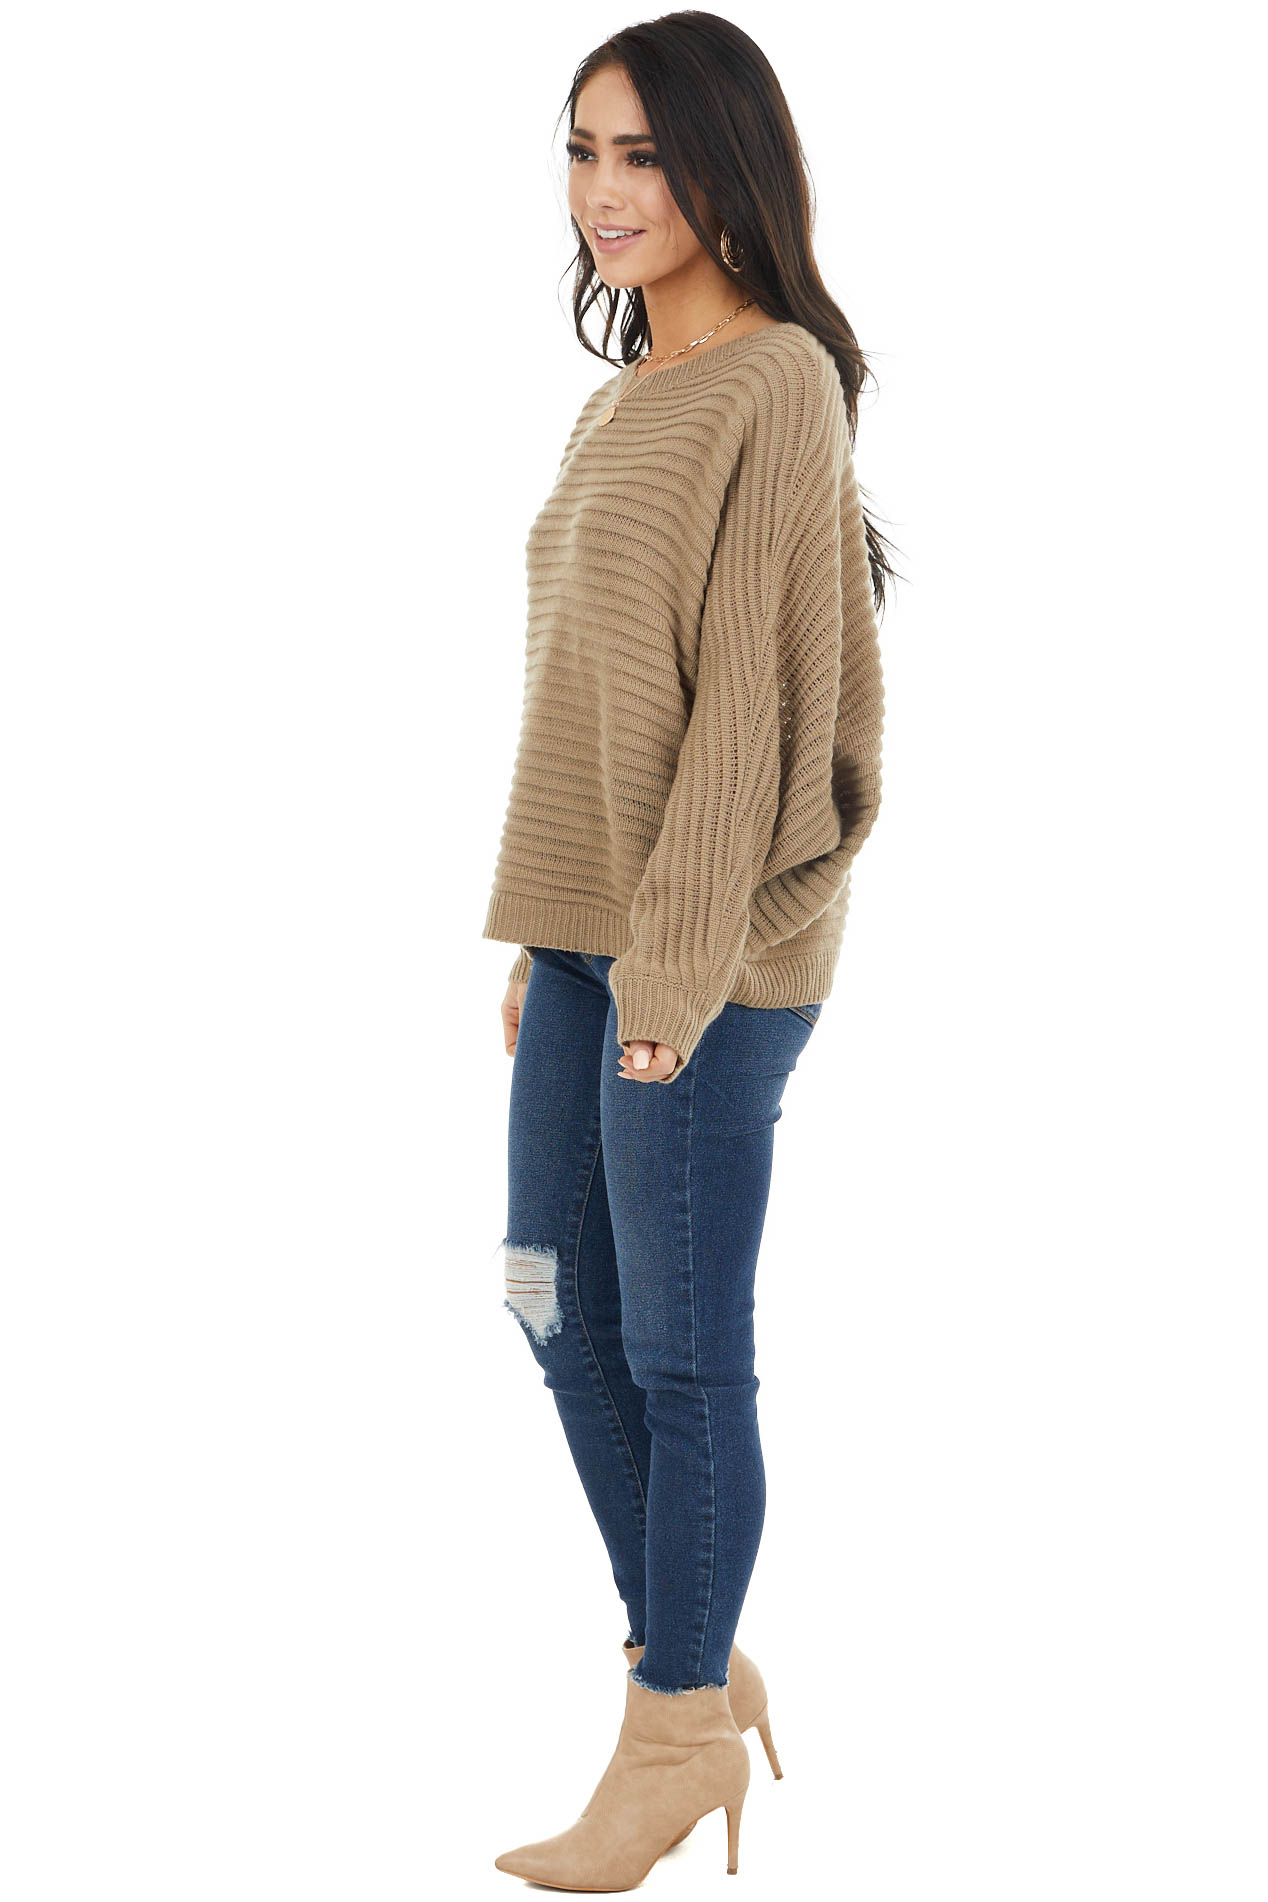 Hazel Textured Ribbed Sweater with Long Dolman Sleeves